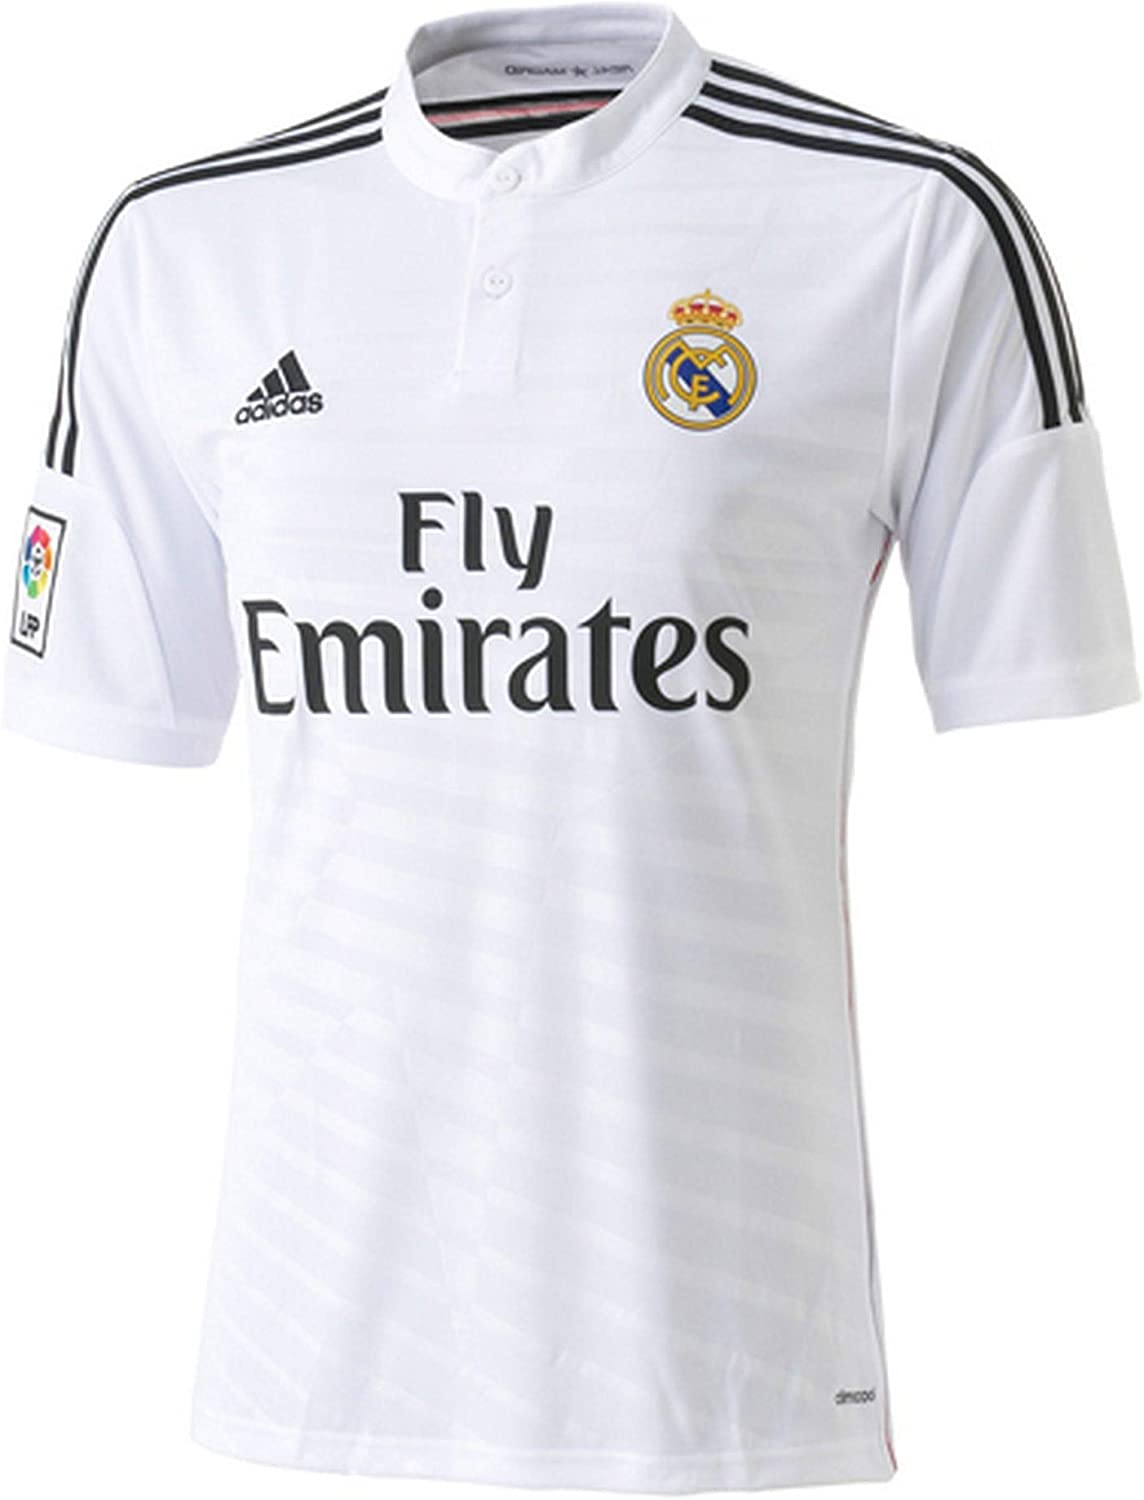 Real Madrid Youth Soccer Jersey 14/15